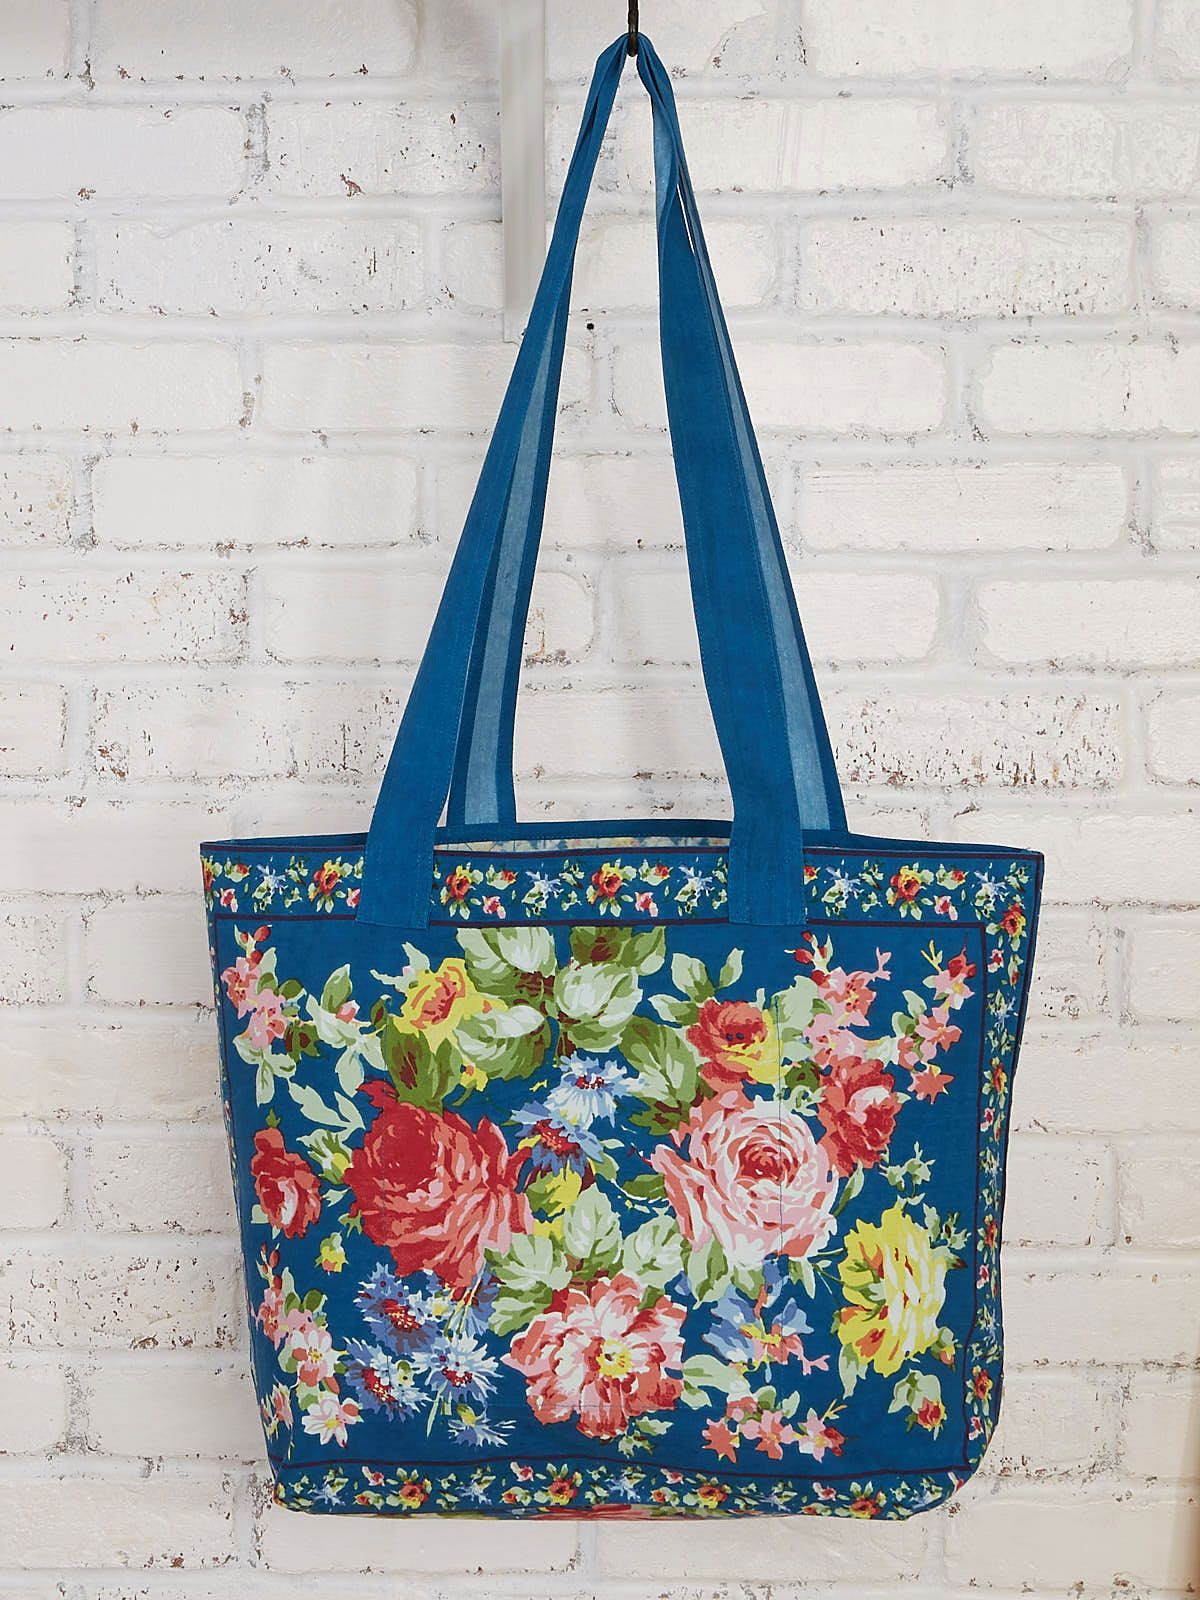 Practical and sweet, this simple market bag is enticingly